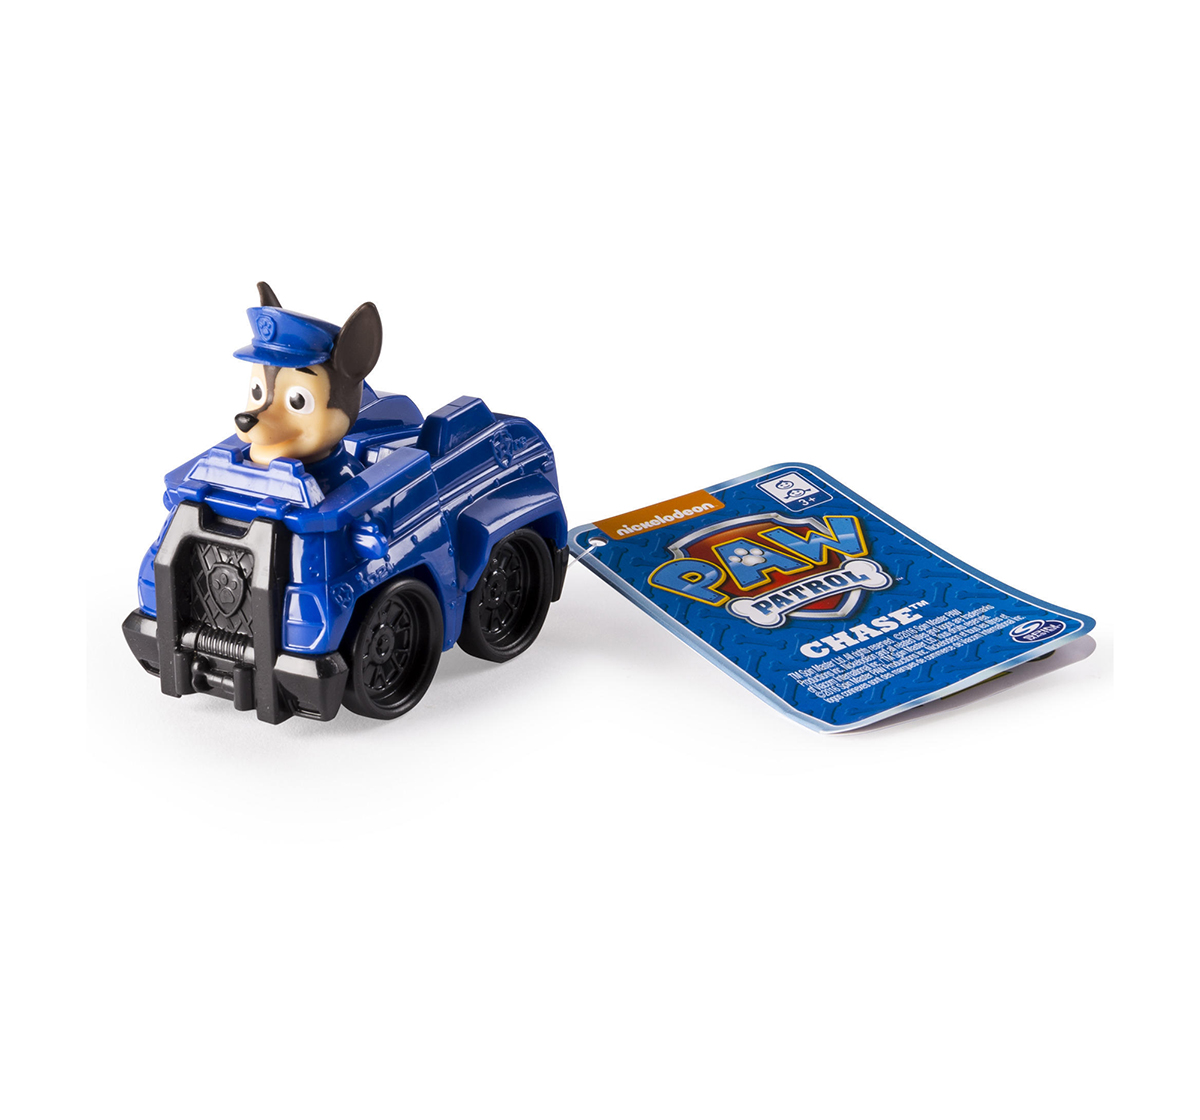 Paw Patrol   Paw Patrol - Value Rescue Racers Action Figures for Boys age 3Y+